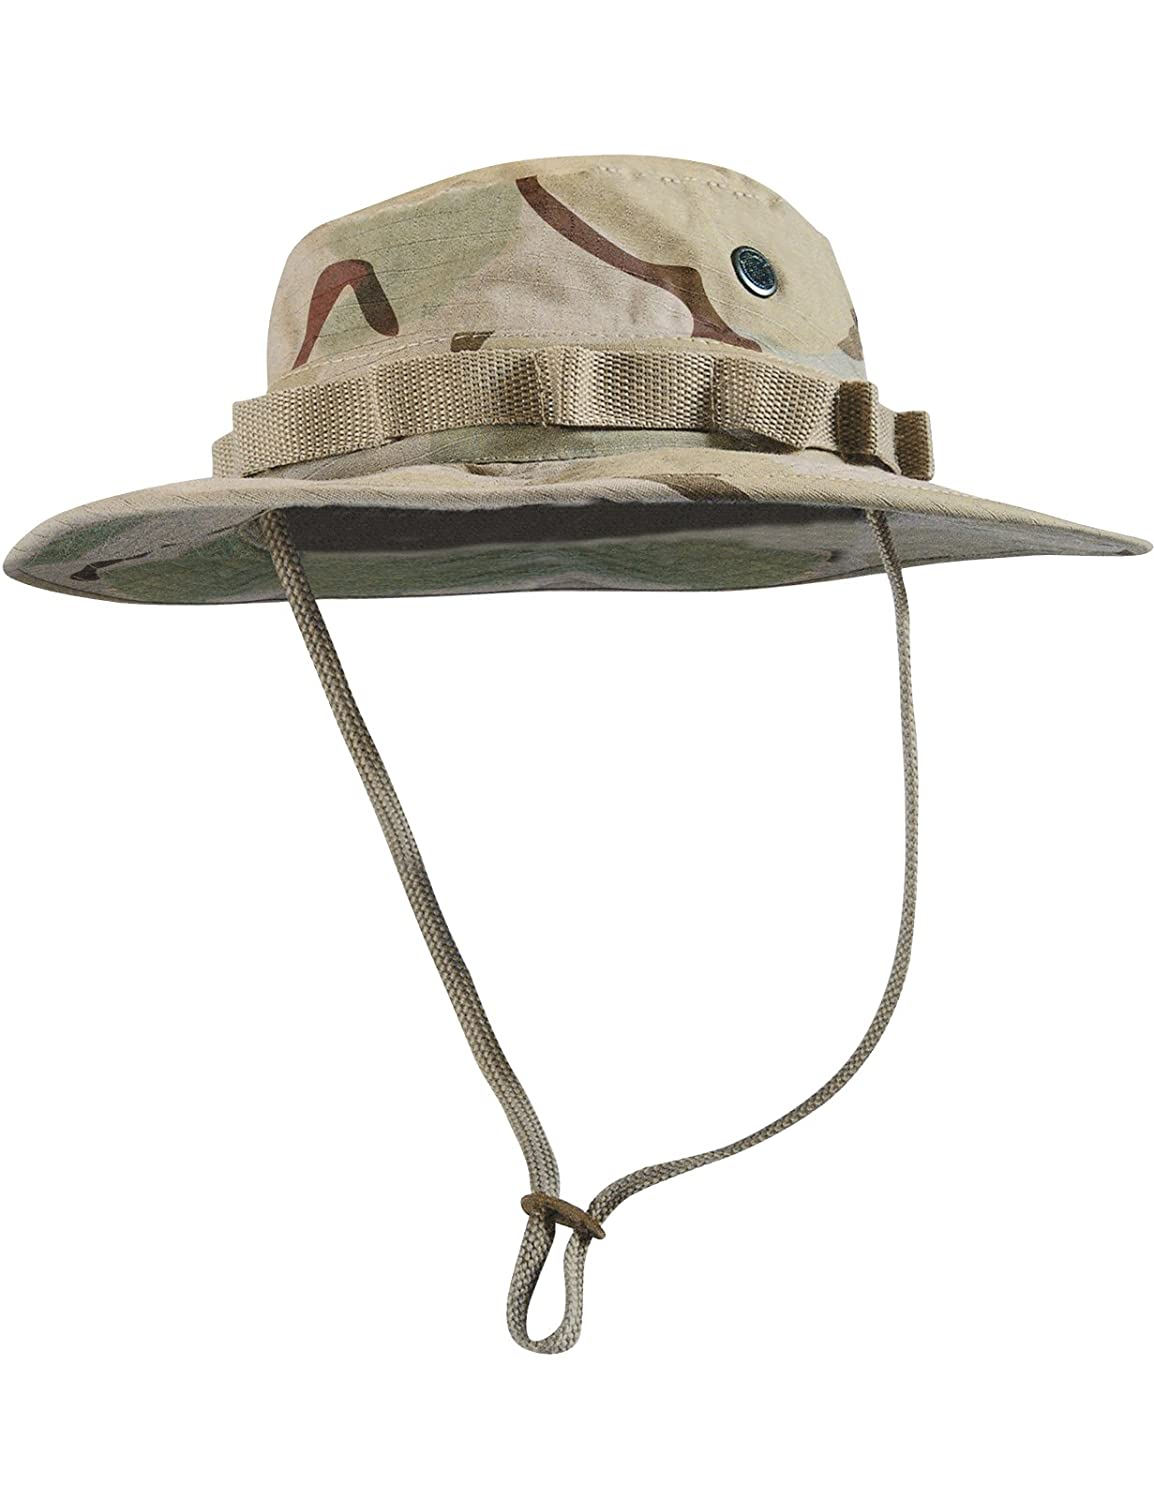 4514ccdbf8a CN Outdoor GI Boonie Army-Style Tropical Hat Camouflage Desert   Amazon.co.uk  Sports   Outdoors